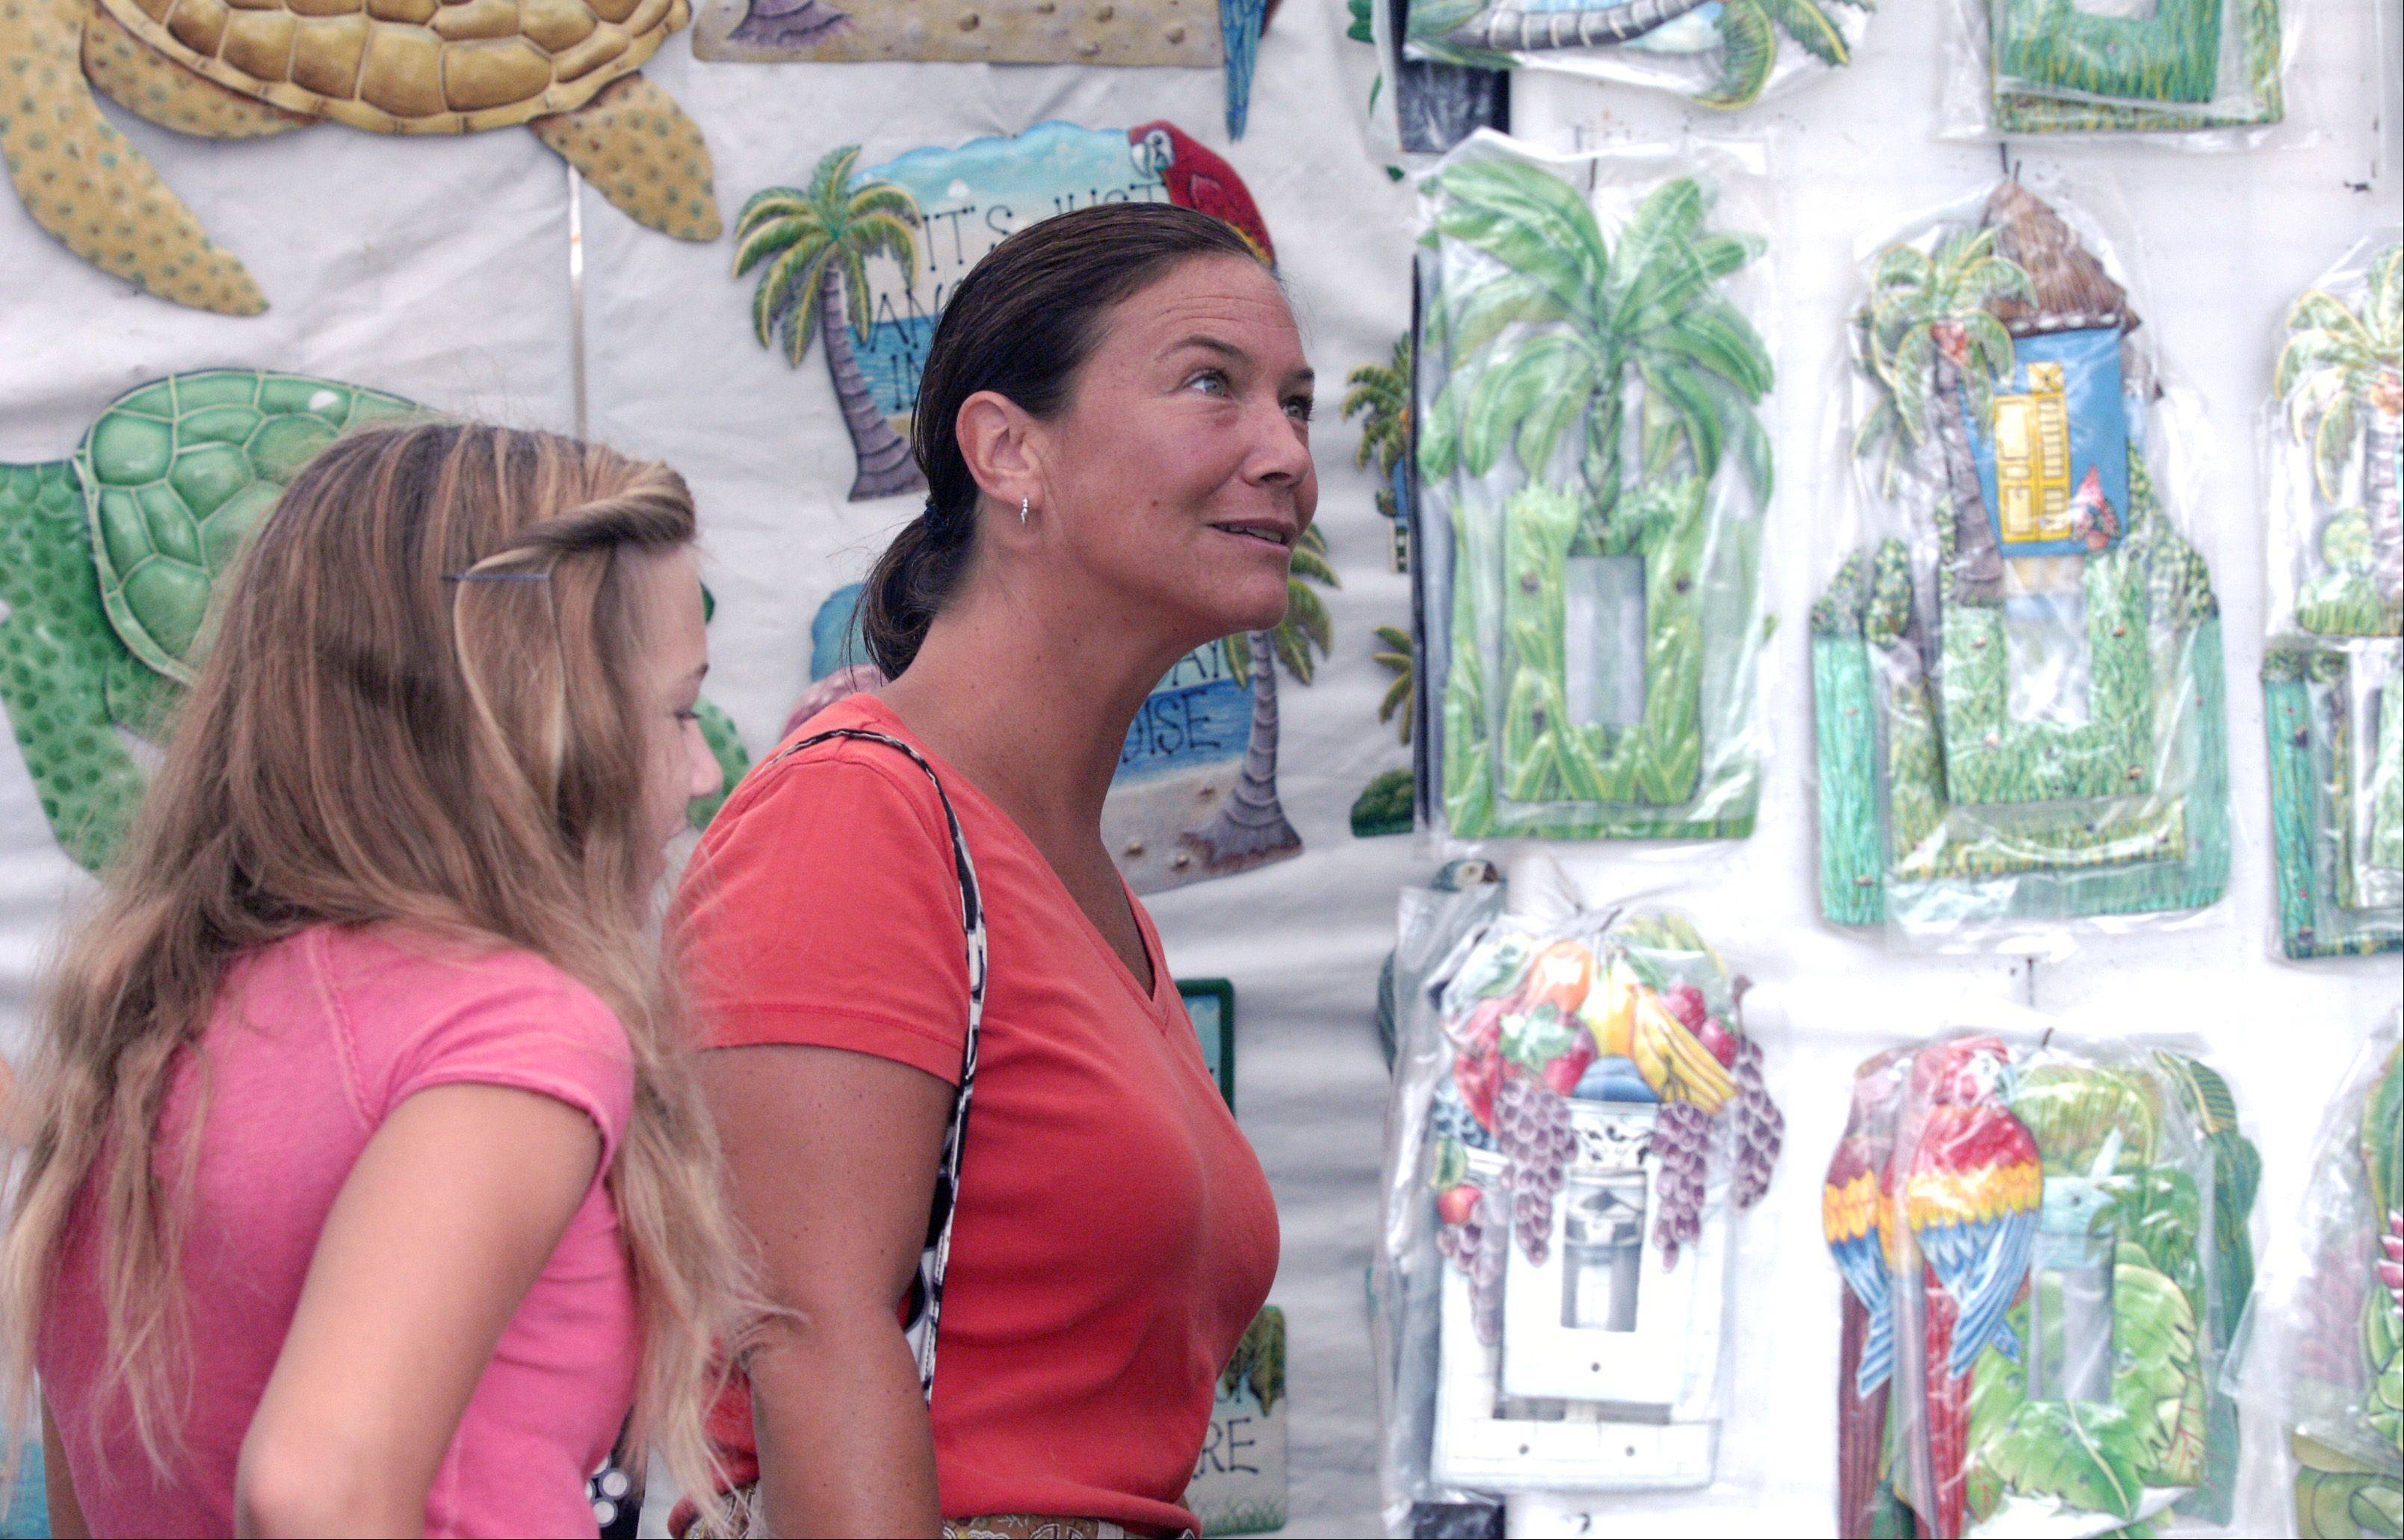 Ashley Hagstrom, 13, and her mother, Joan, of Glen Ellyn look over the art for sale by United Caribbean Artist Gallery Inc. during the Glen Ellyn Festival of the Arts at Lake Ellyn Park Sunday.